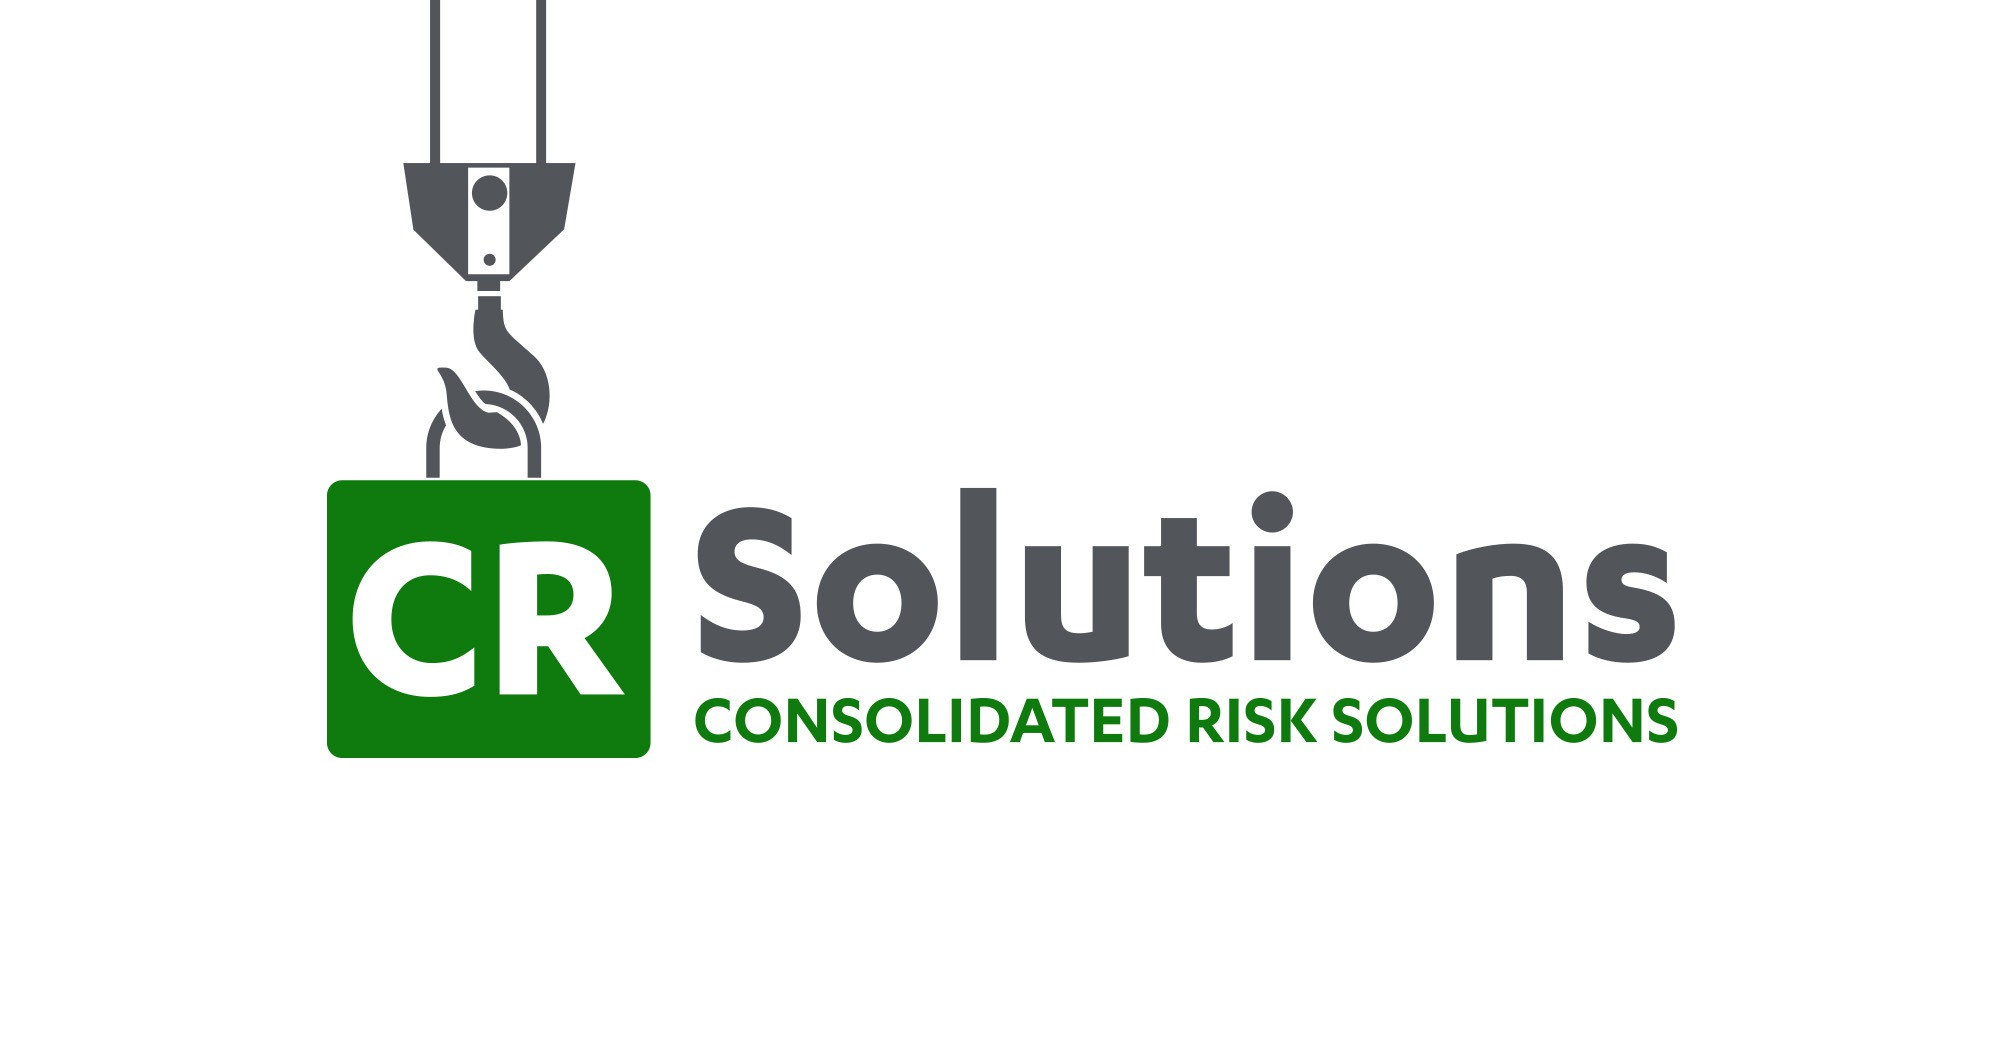 Refresh Brand Logo to be in a New Flat Style for CR Solutions - SEE EXAMPLES